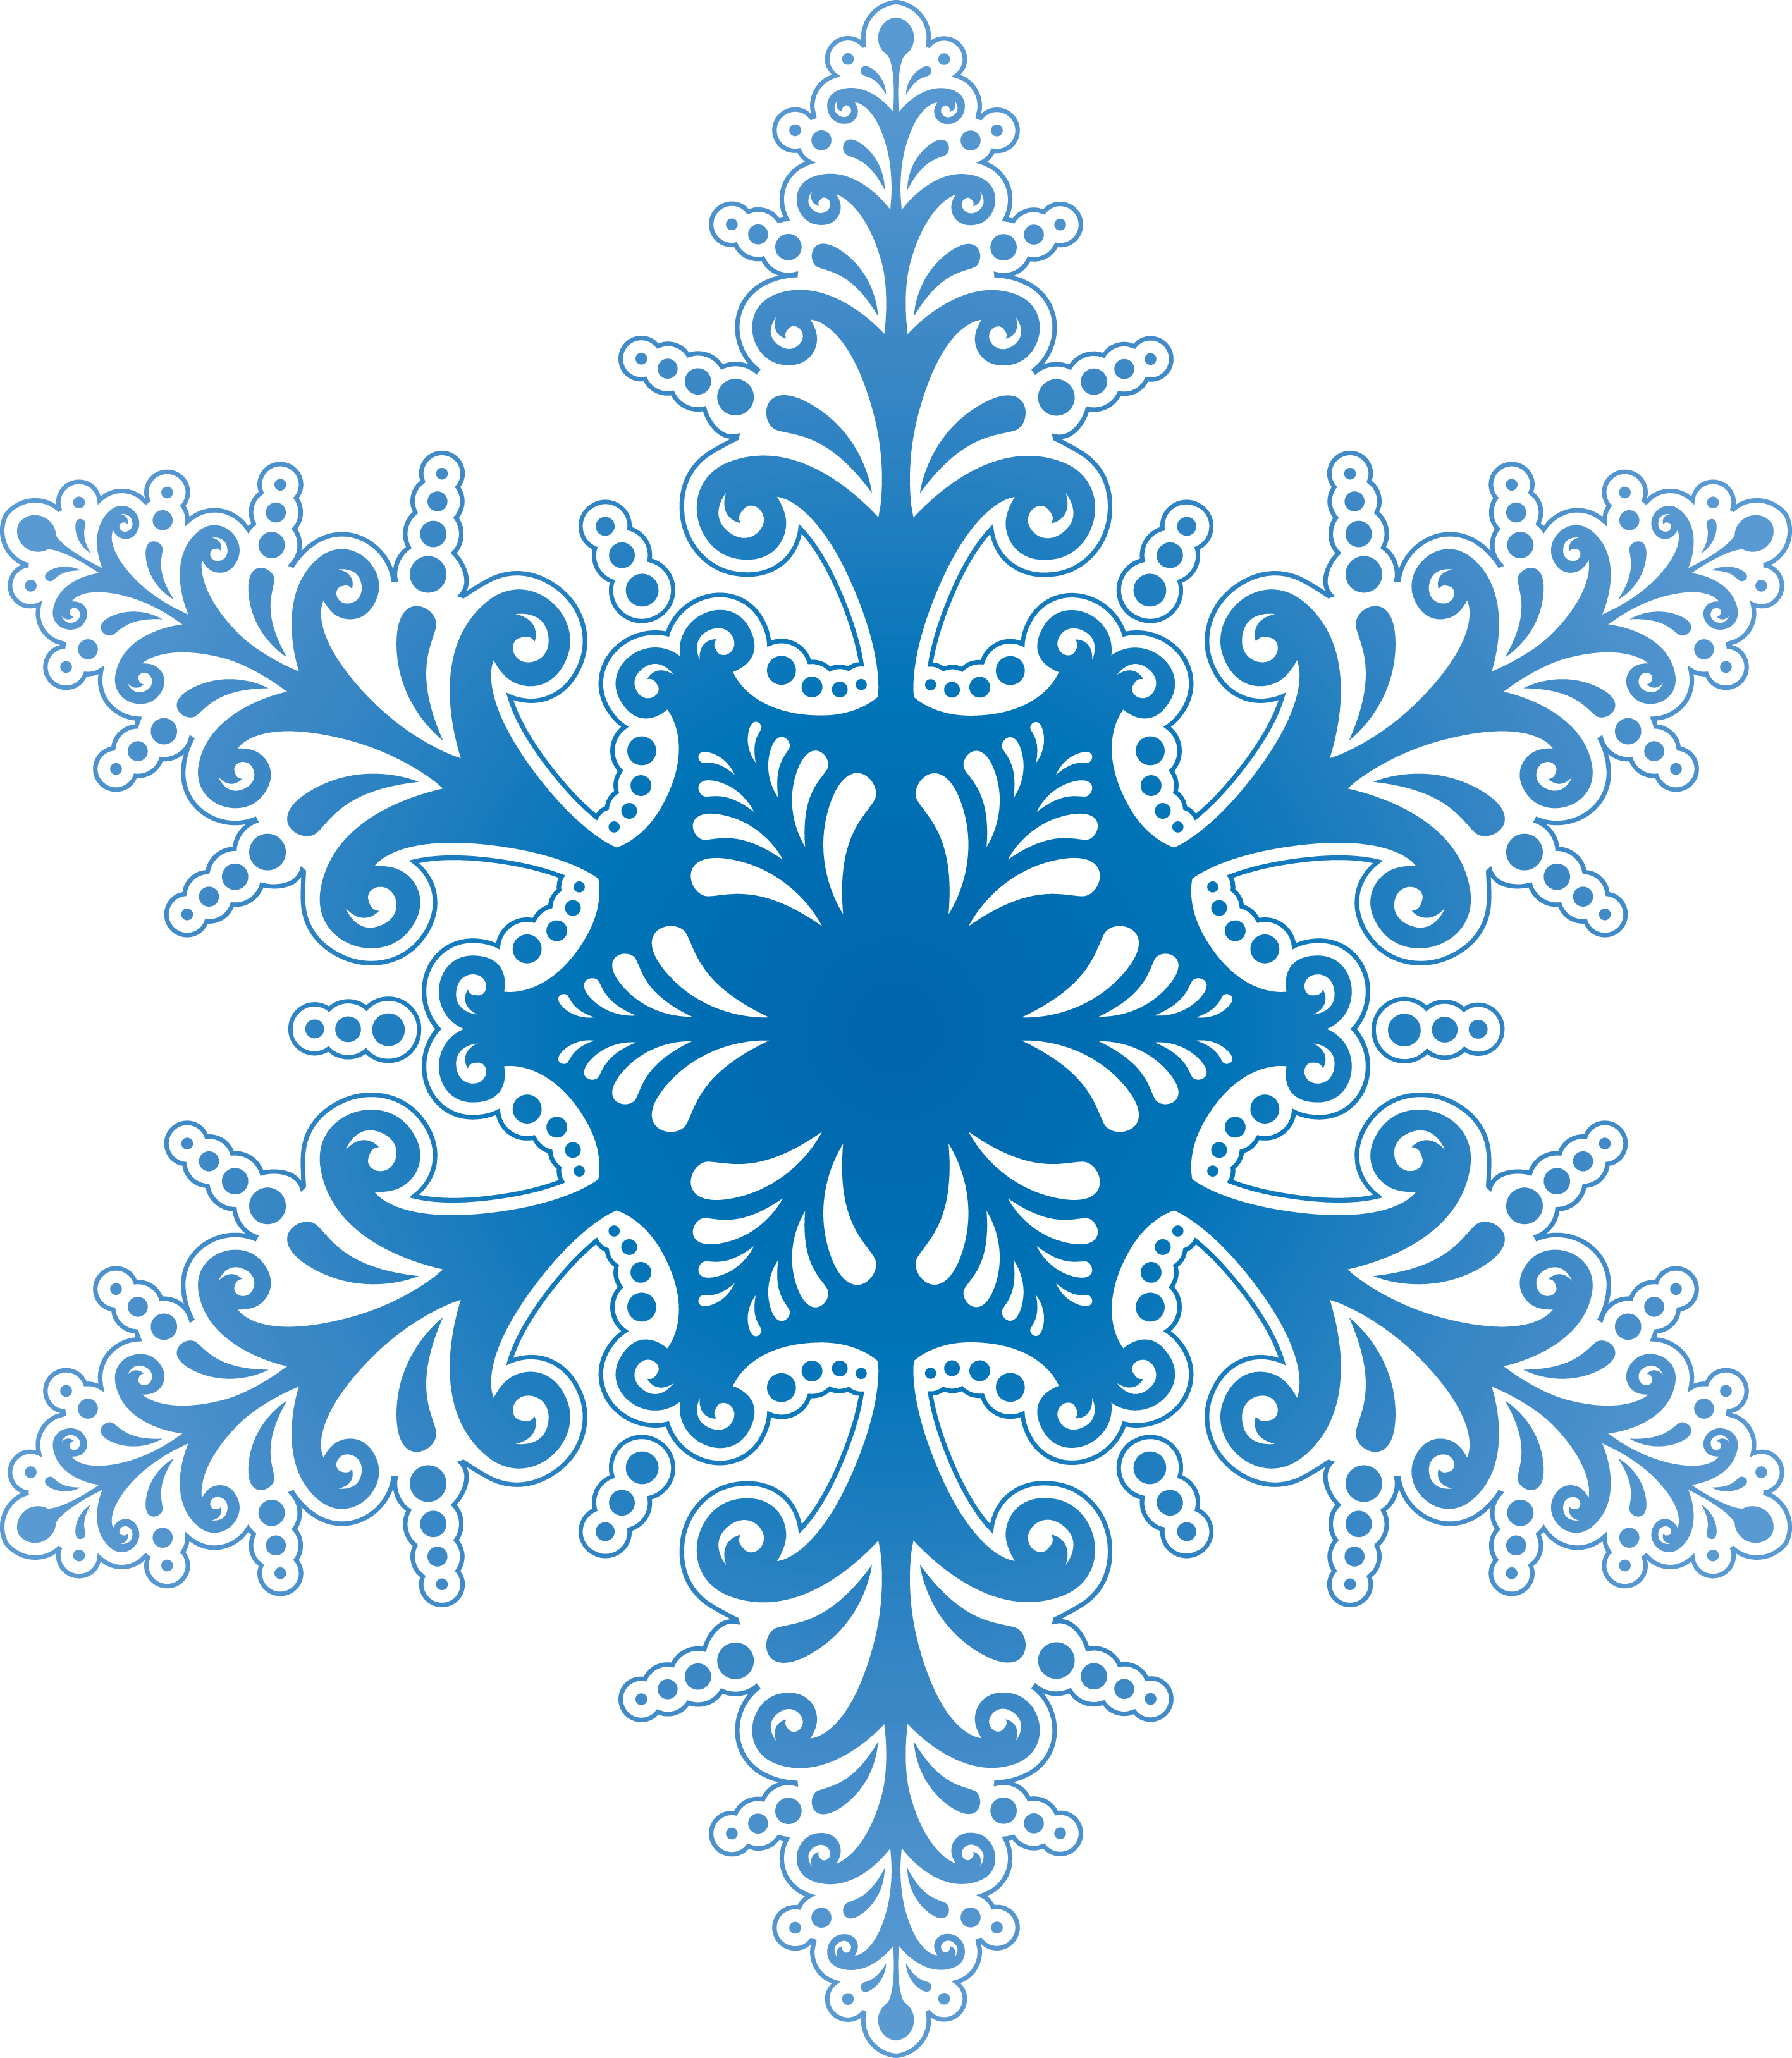 Download this high resolution Snowflakes PNG